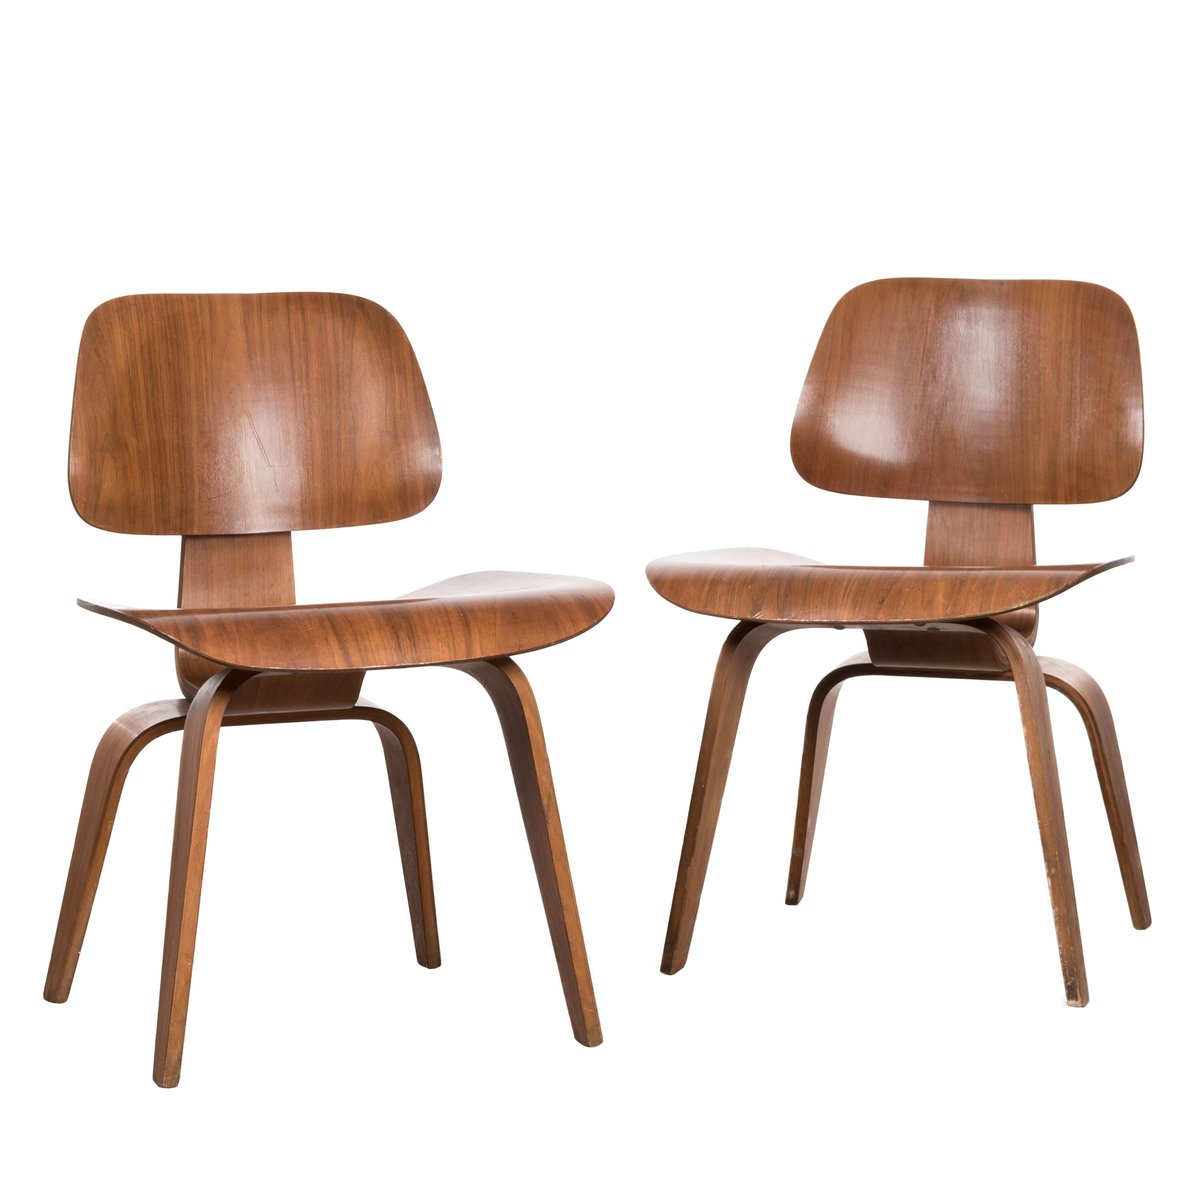 Pretty Dcw Walnut Plywood Chair By Charles Ray Eames Herman Eames Chair Upholstered Eames Chair Dsw Herman Dcw Walnut Plywood Chair By Charles Ray Eames houzz 01 Eames Dining Chair